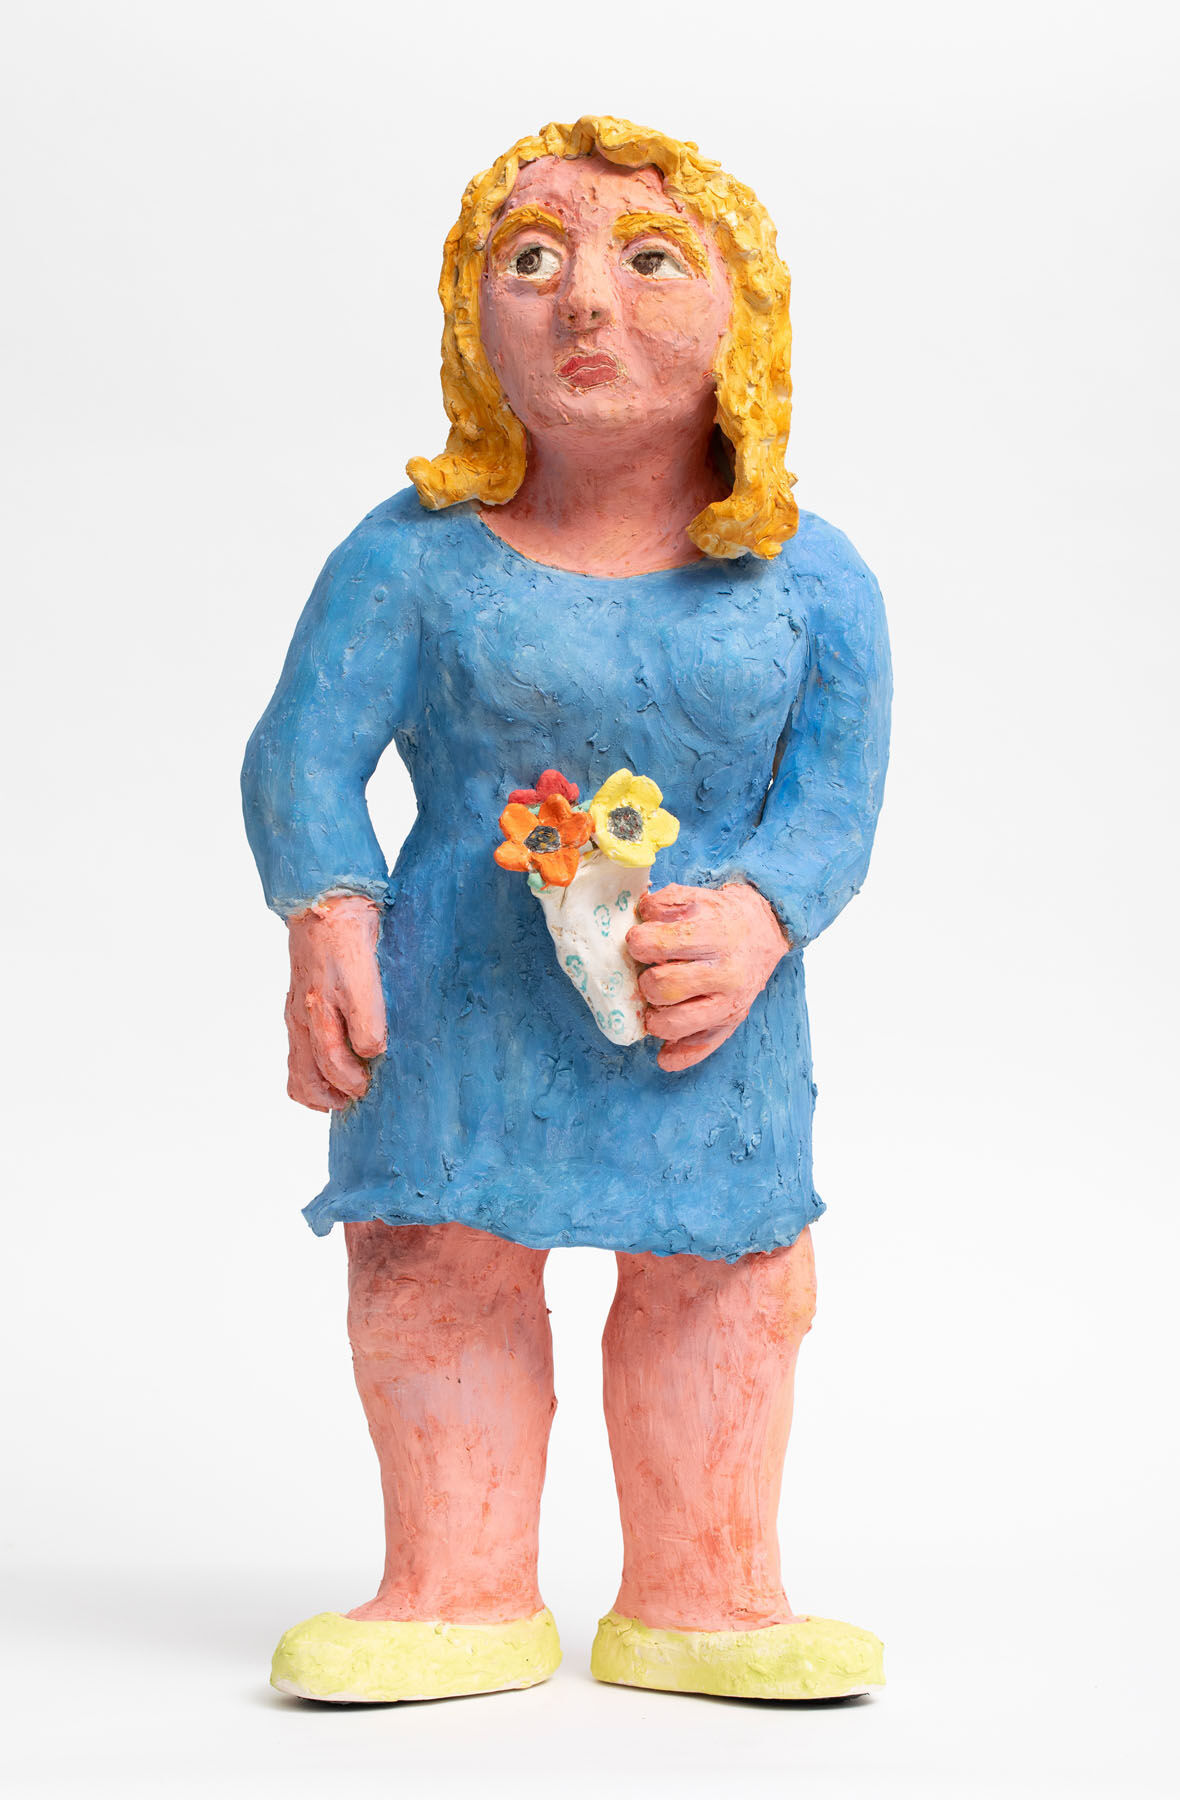 Sally Saul, Blue Lady, 2018. Courtesy of the artist and Rachel Uffner Gallery.